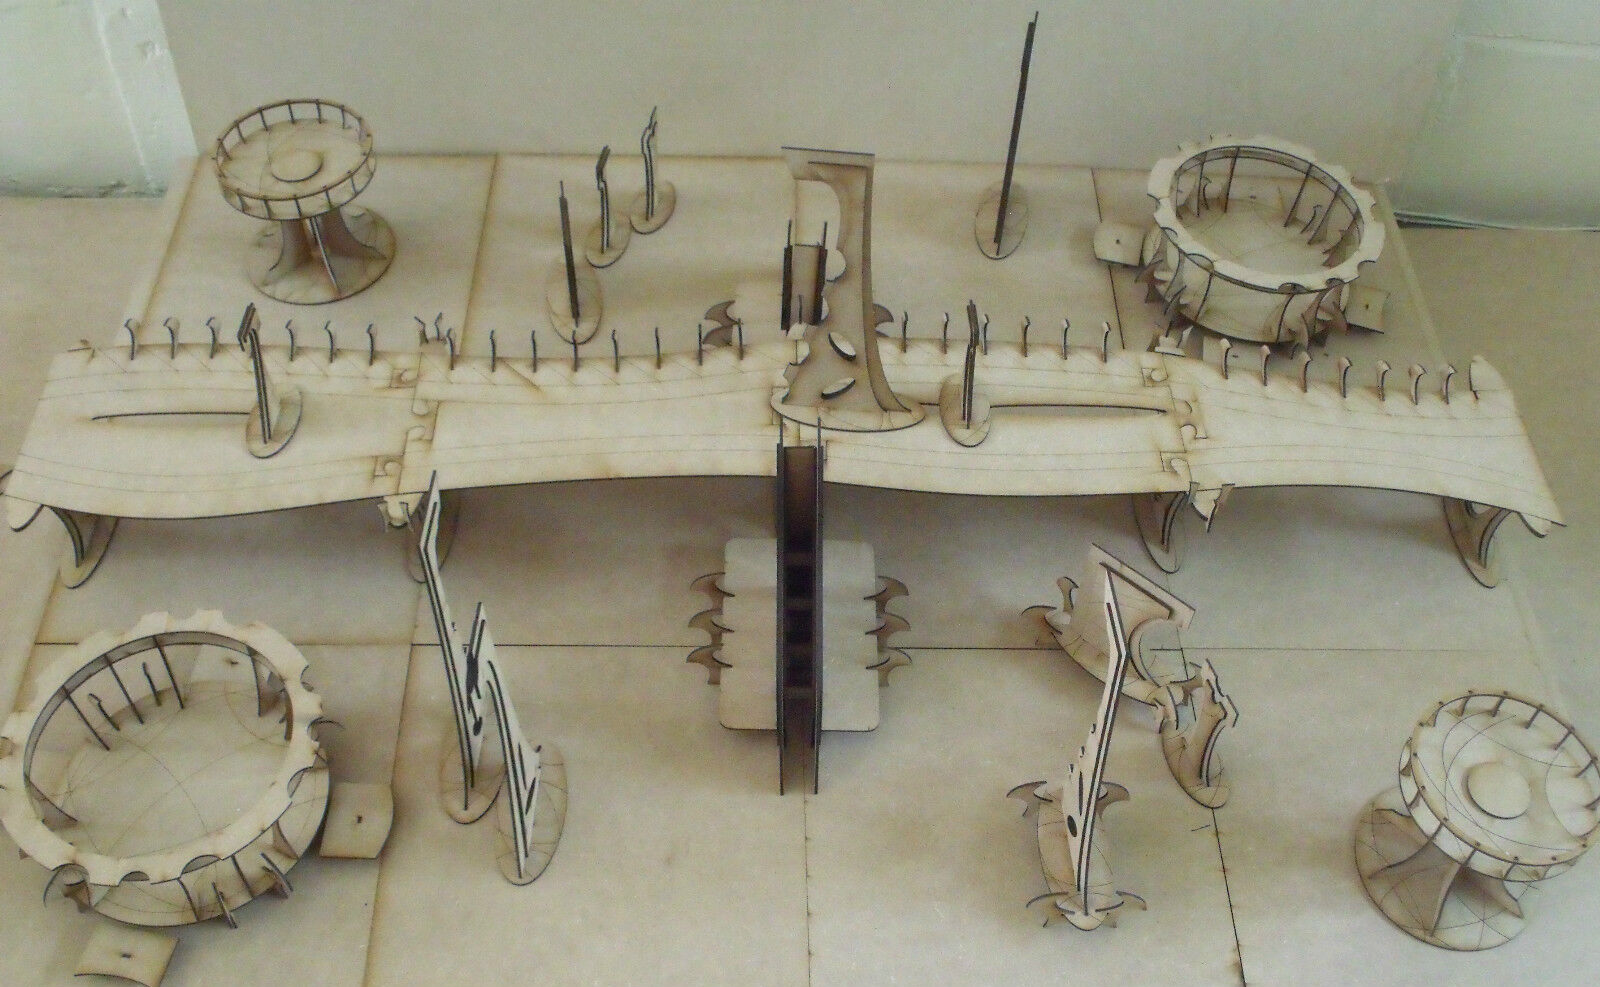 Warhammer 40k apocalypse city fight Table top Wargames scenery terrain Eldar